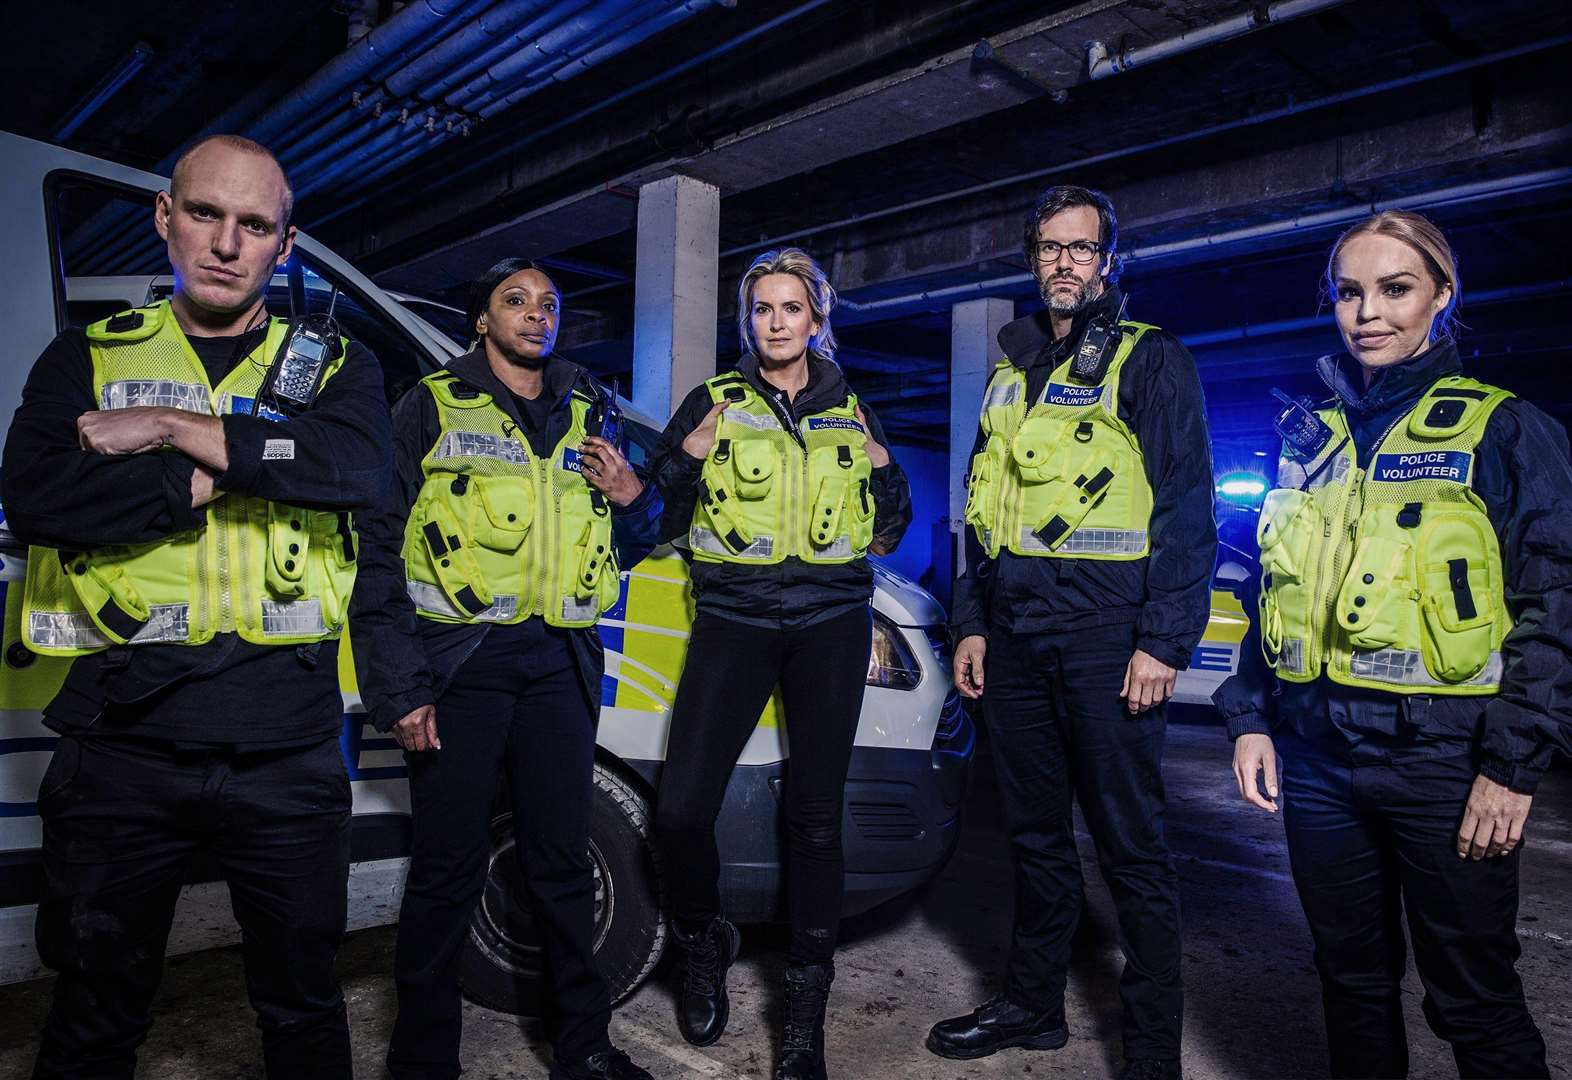 TV stars join Cambridgeshire police on the frontline for Channel Four show